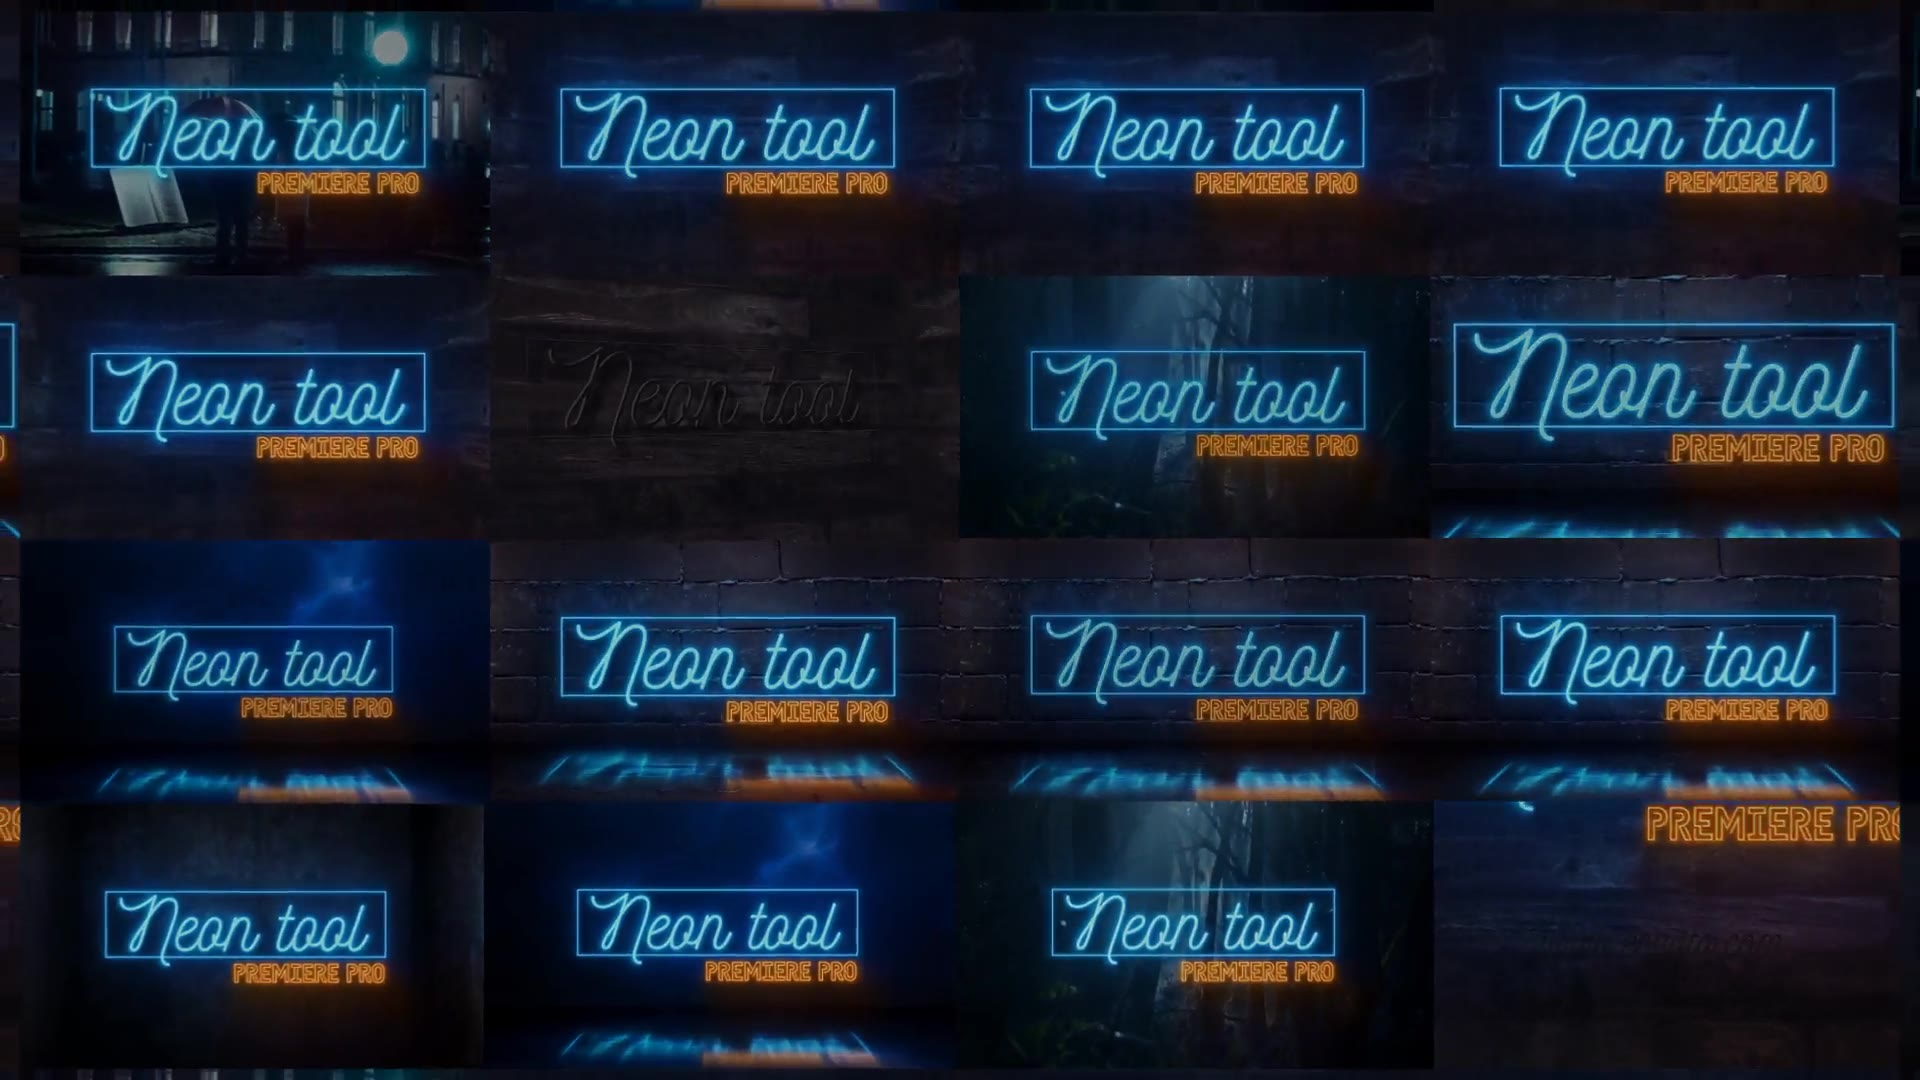 Neon Toolkit Videohive 24656398 Premiere Pro Image 11